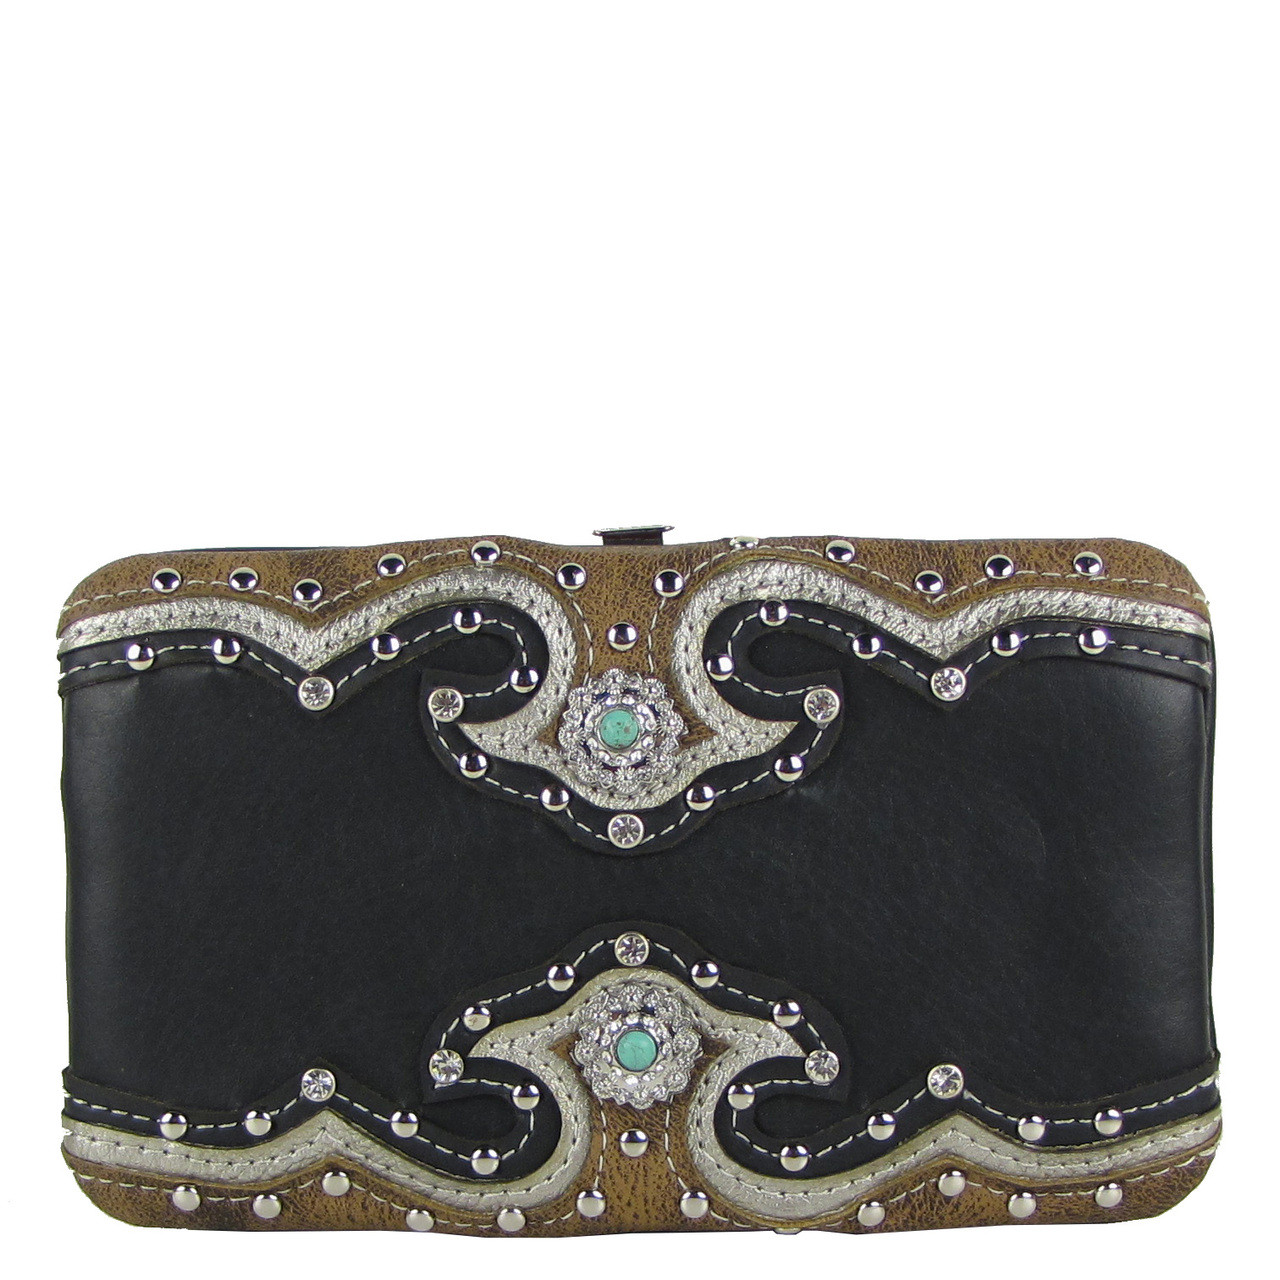 BLACK WESTERN STUDDED EMERALD STONE LOOK FLAT THICK WALLET FW2-12111BLK